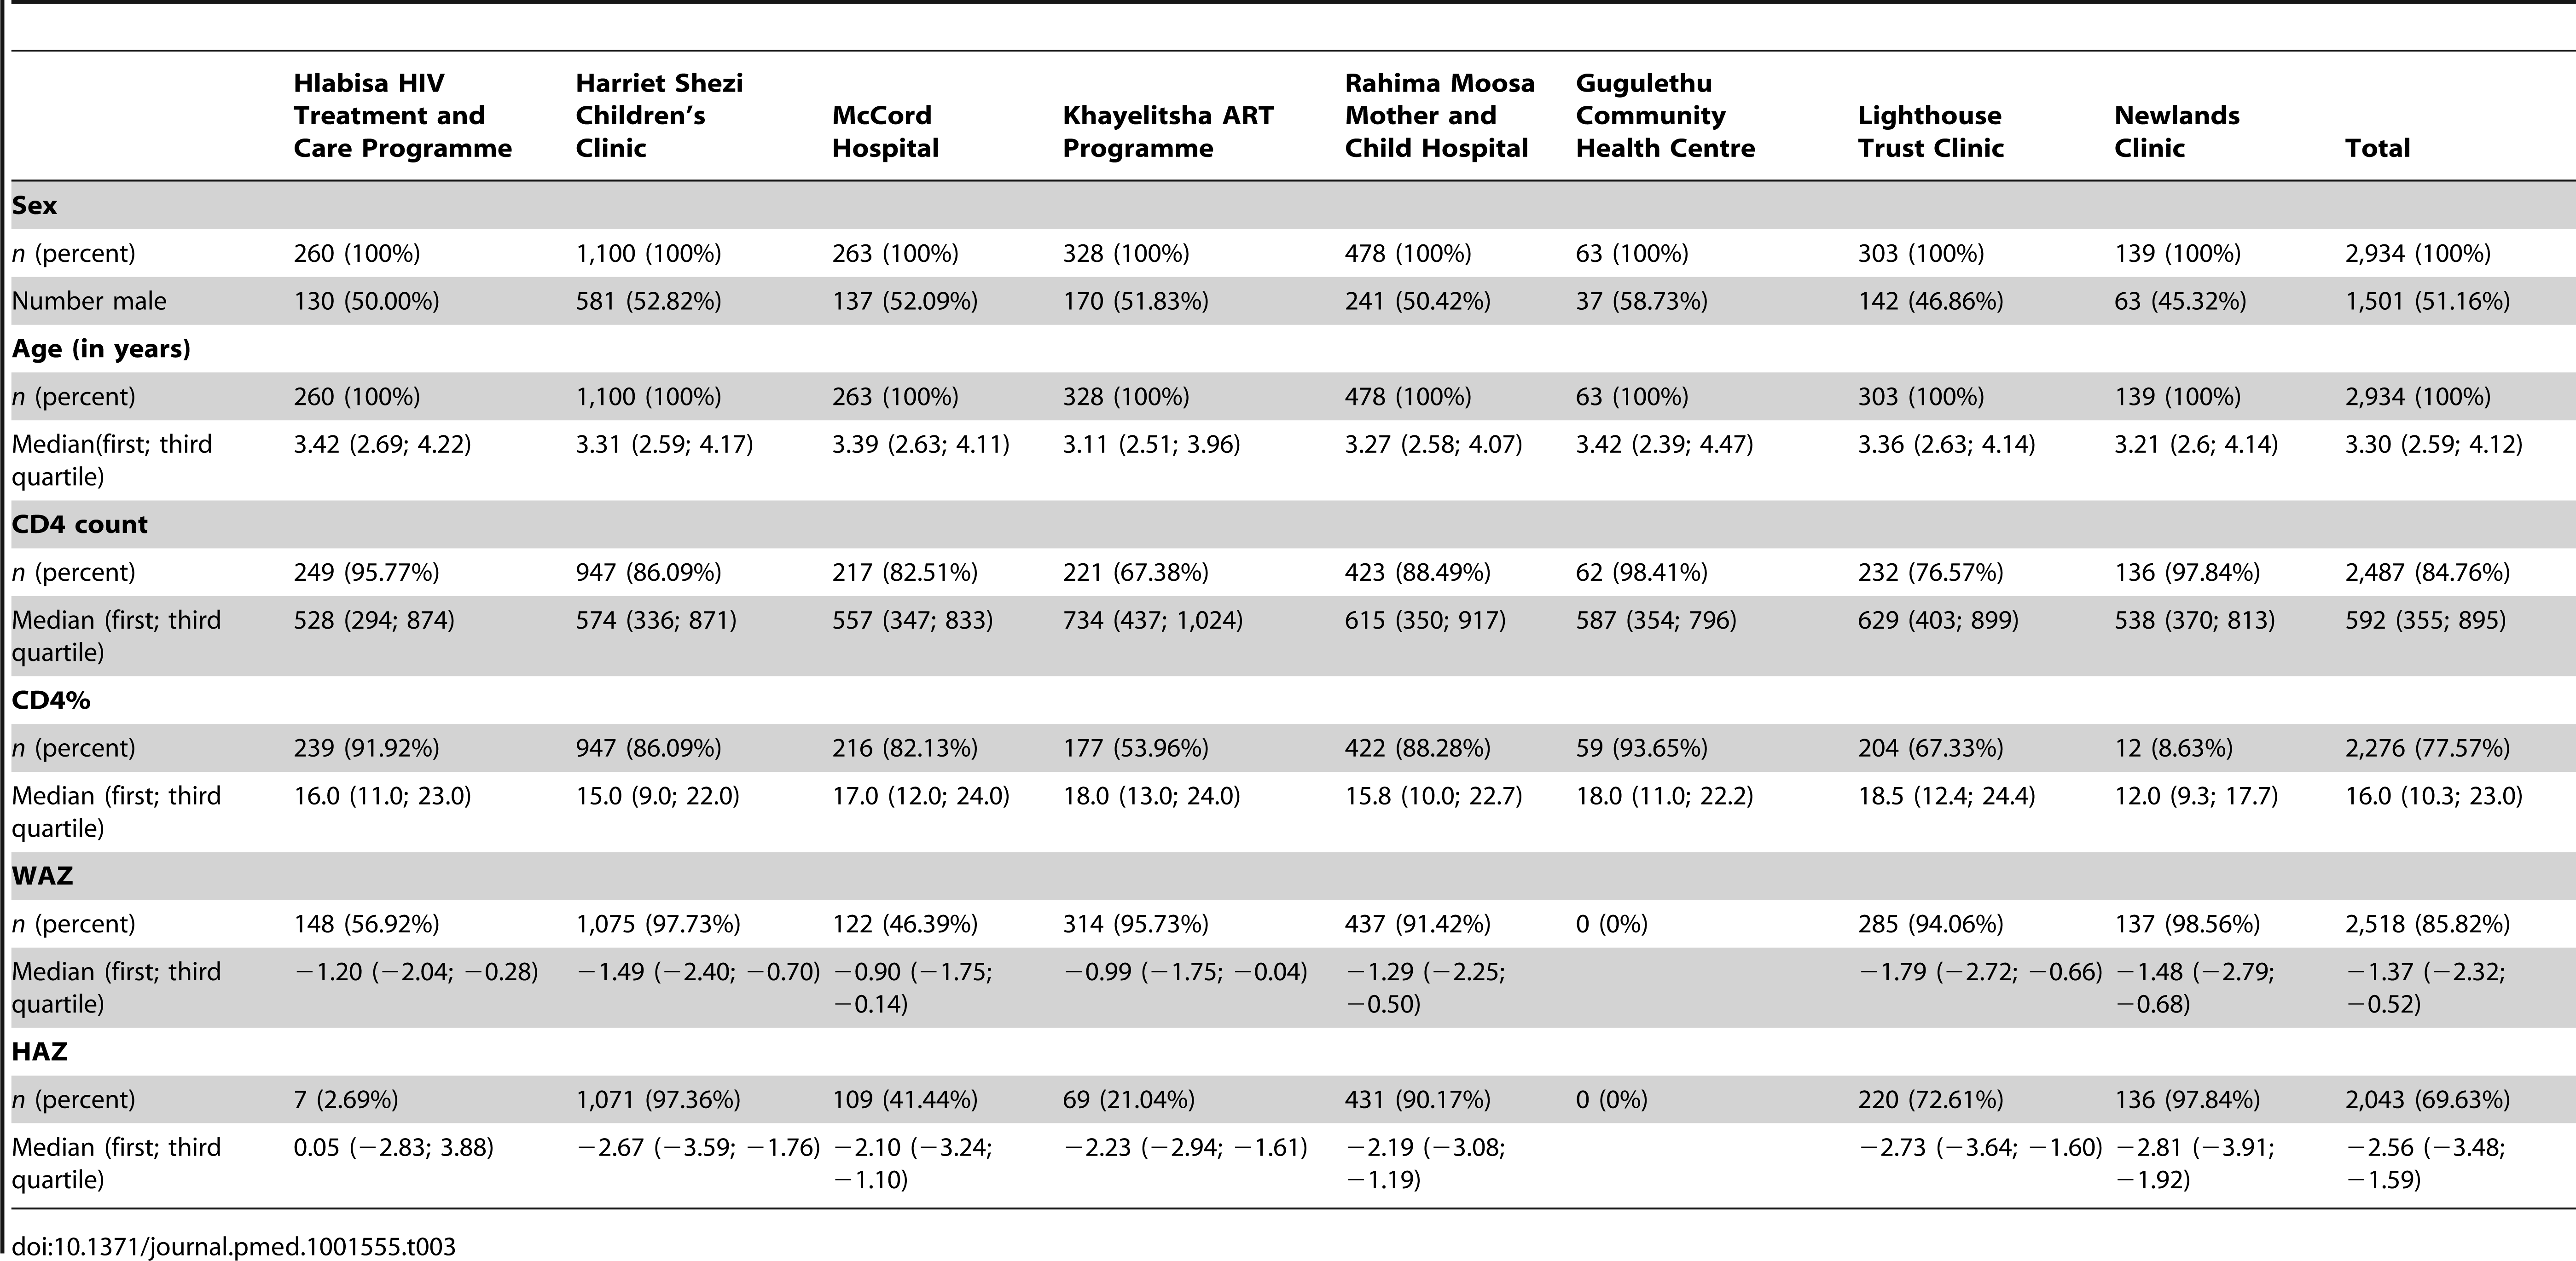 Patient characteristics at first clinic visit overall (total) and stratified according to cohort.